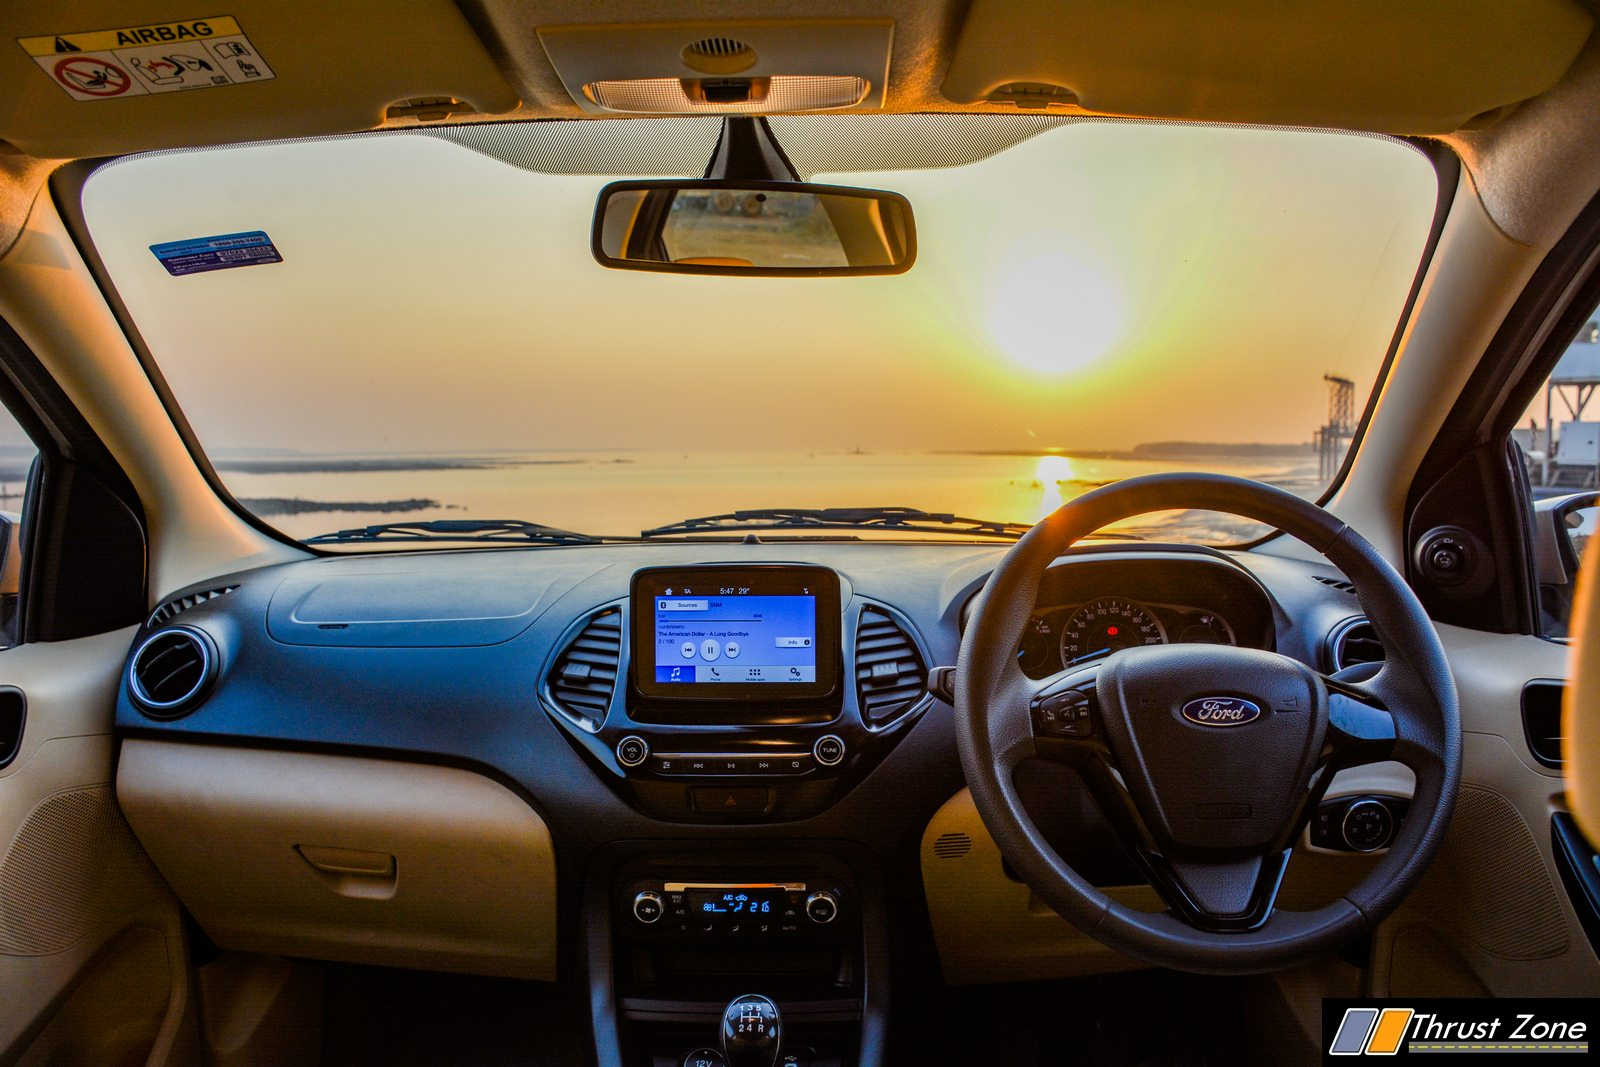 http://www.thrustzone.com/wp-content/uploads/2019/01/2018-Ford-Aspire-Diesel-Review-Road-Test-1-1.jpg